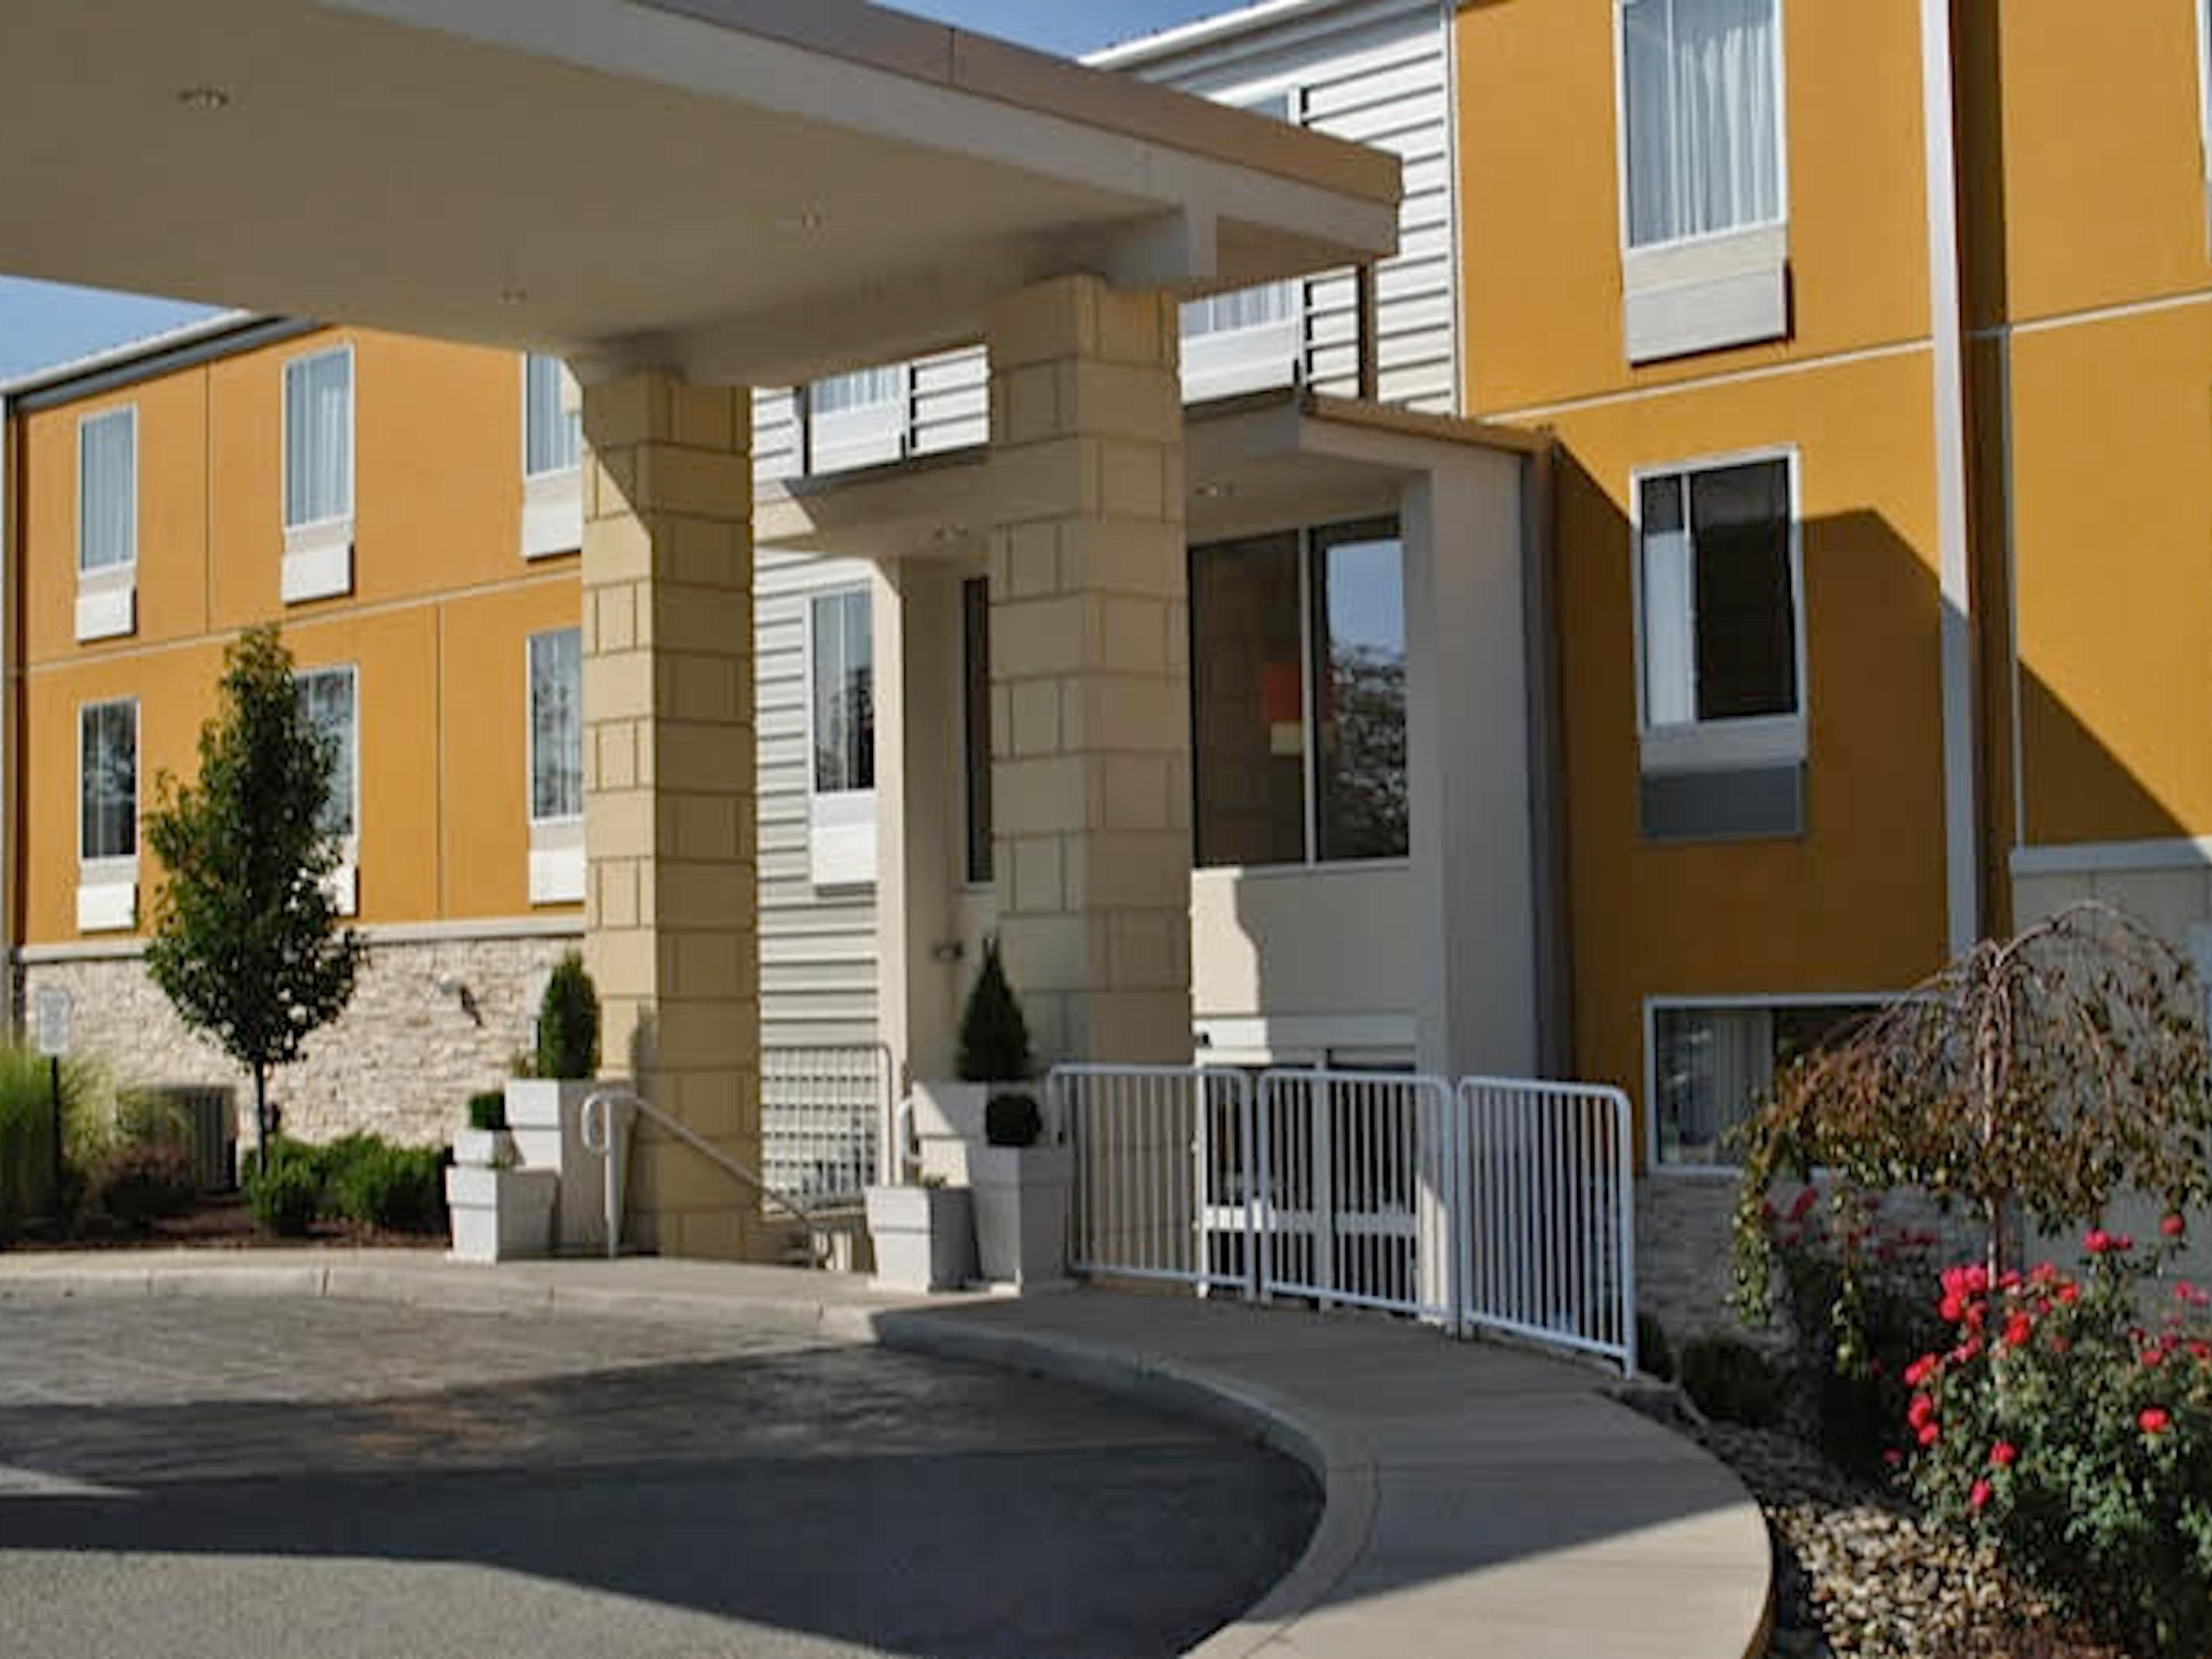 Candlewood Suites Pittsburgh Extended Stay Hotels